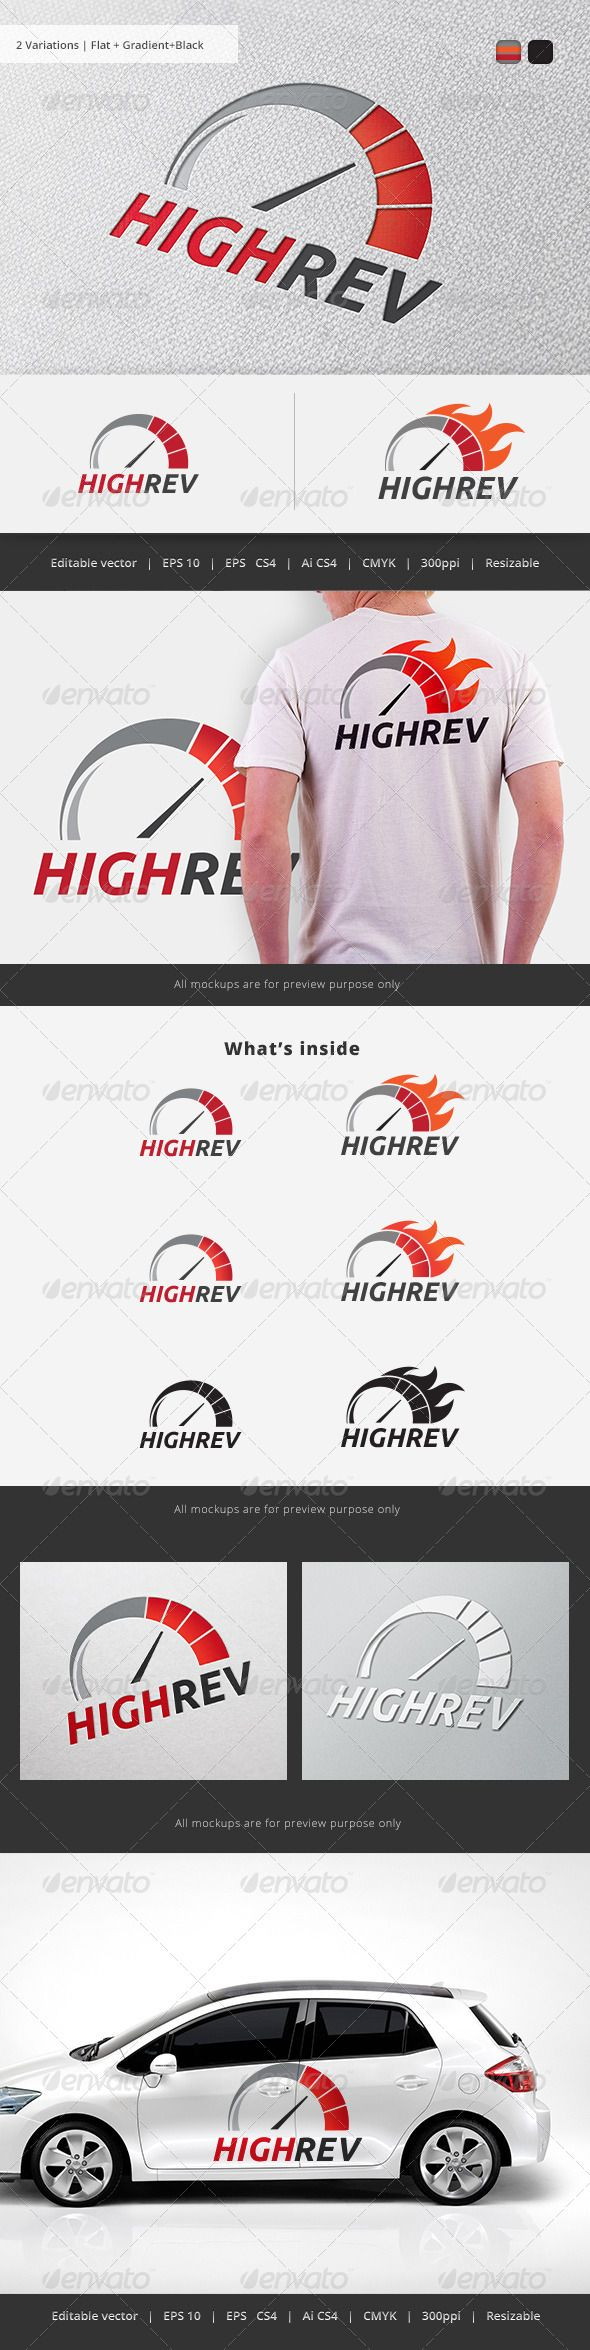 High Rev Speedo Logo Pinterest Cars, Redline and Fonts